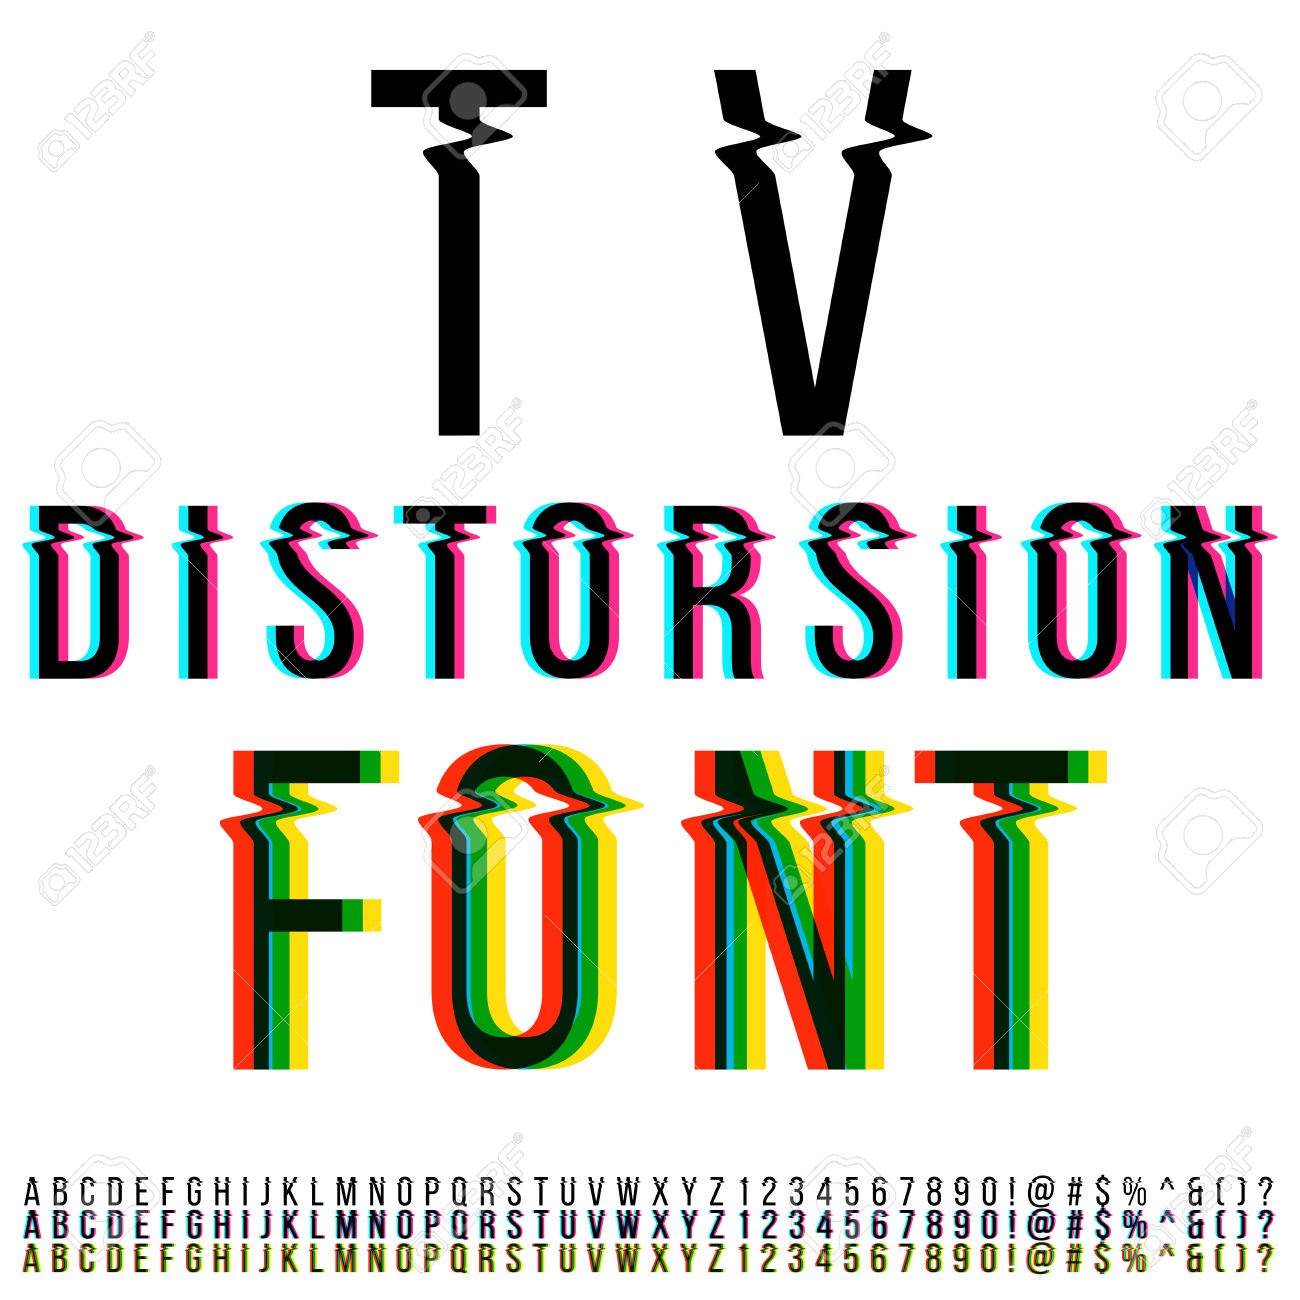 Distortion clipart.